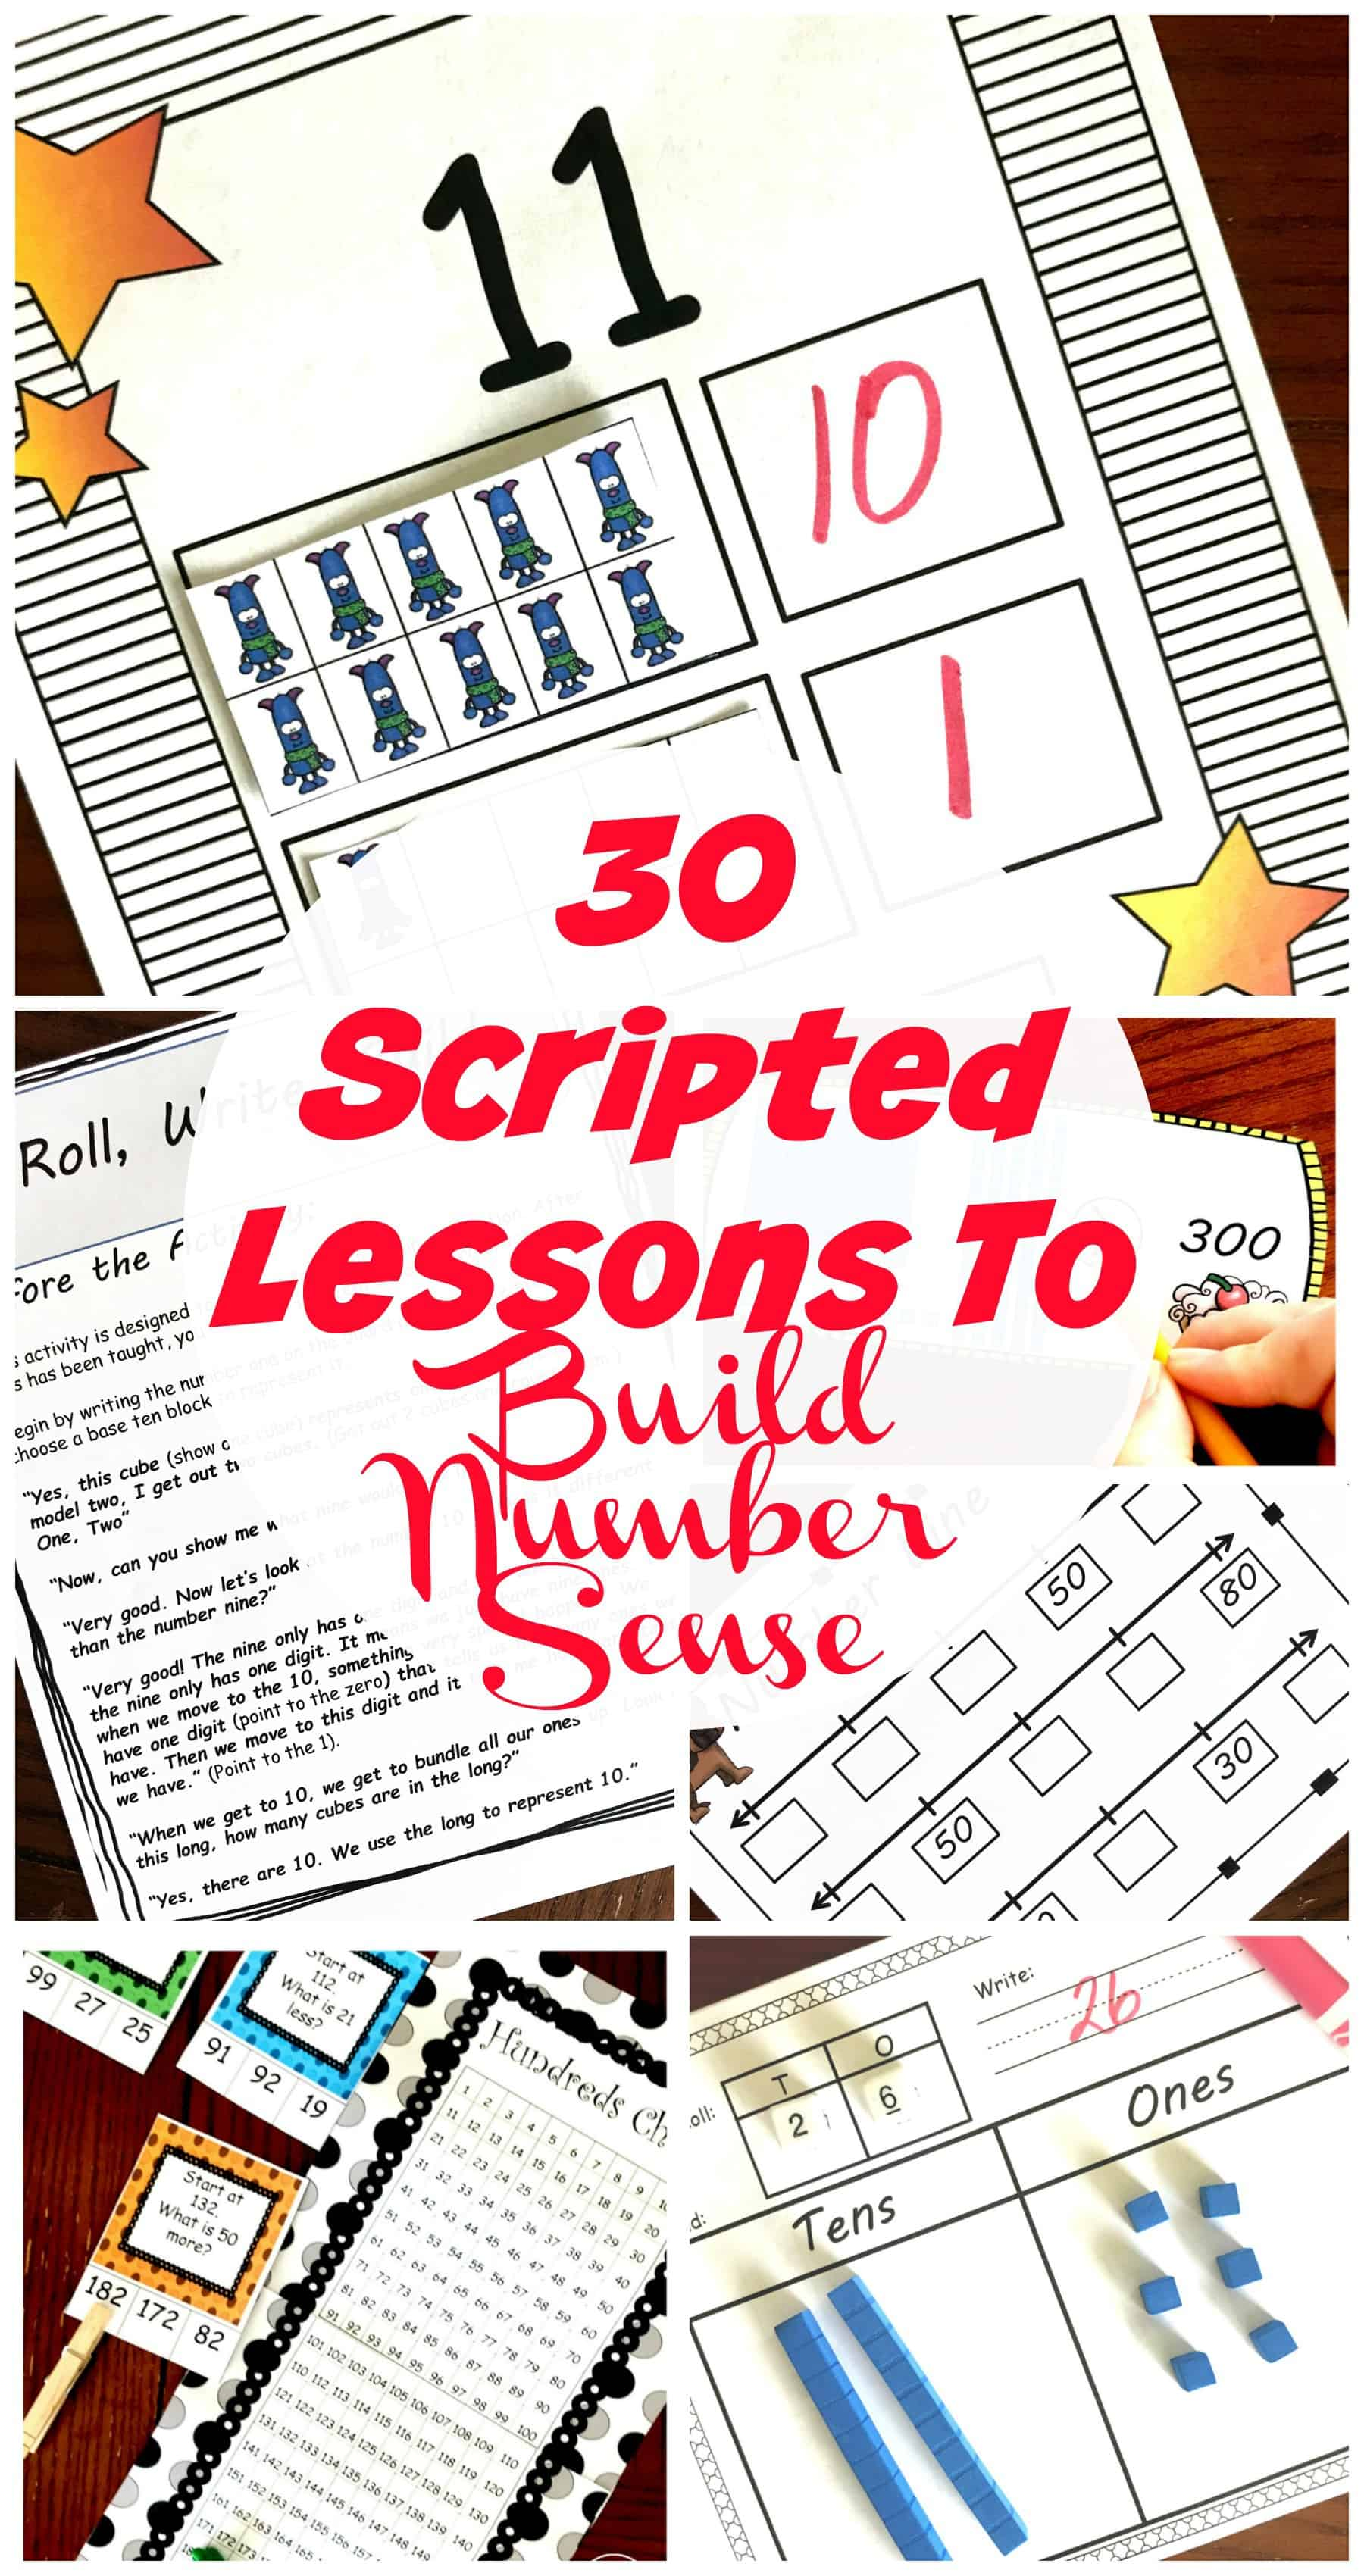 Grab these 30 Scripted Lessons for Developing Number Sense in Kindergarten, First, and Second Grade. The lessons are fun and hands-on to make learning fun for your little ones, but at the same time helping them learn valuable skills. They will explore the hundreds chart, base ten blocks, and number line. Then they get to work on decomposing!